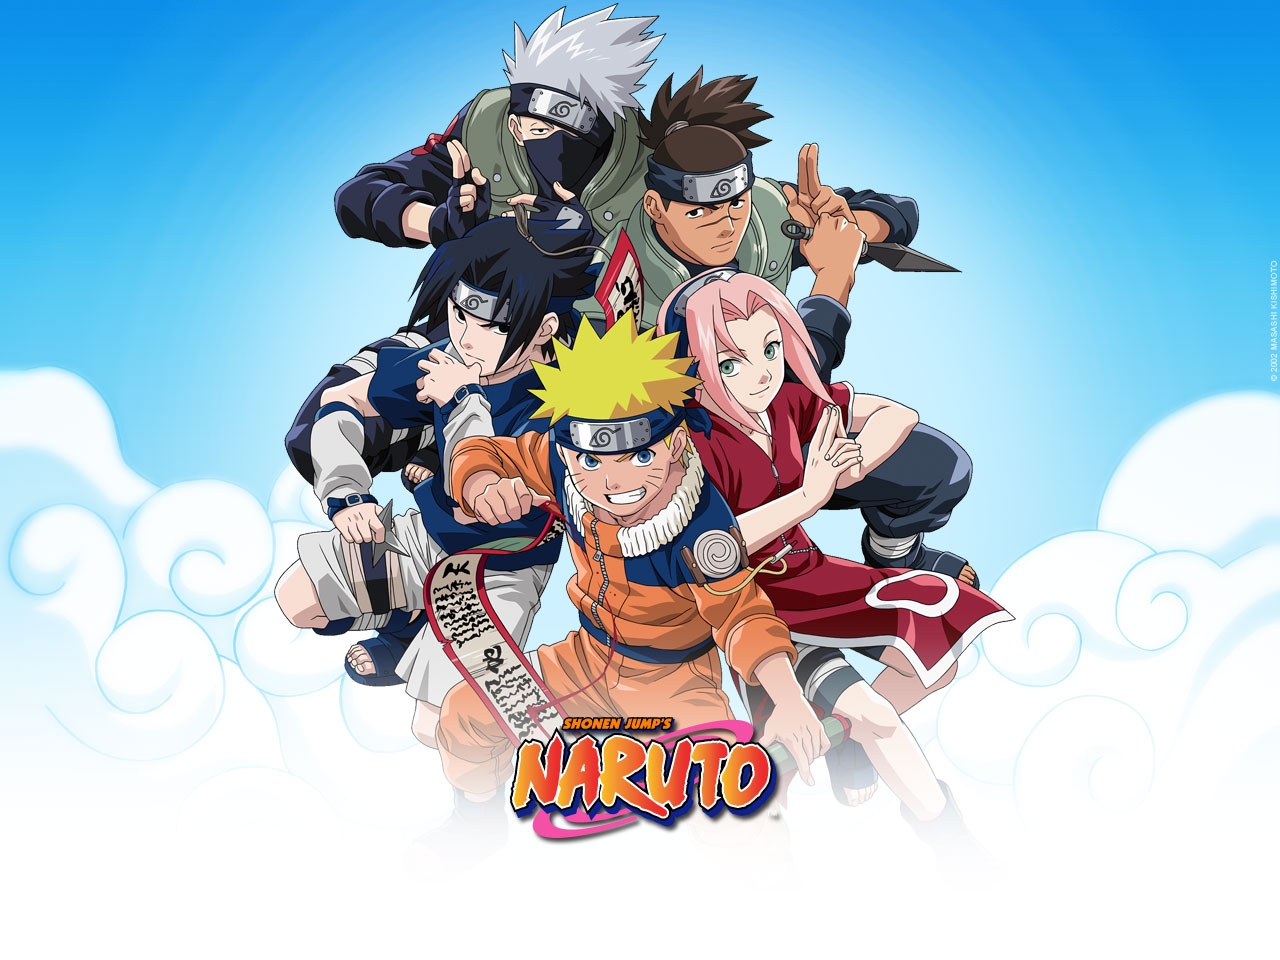 Naruto Screensaver